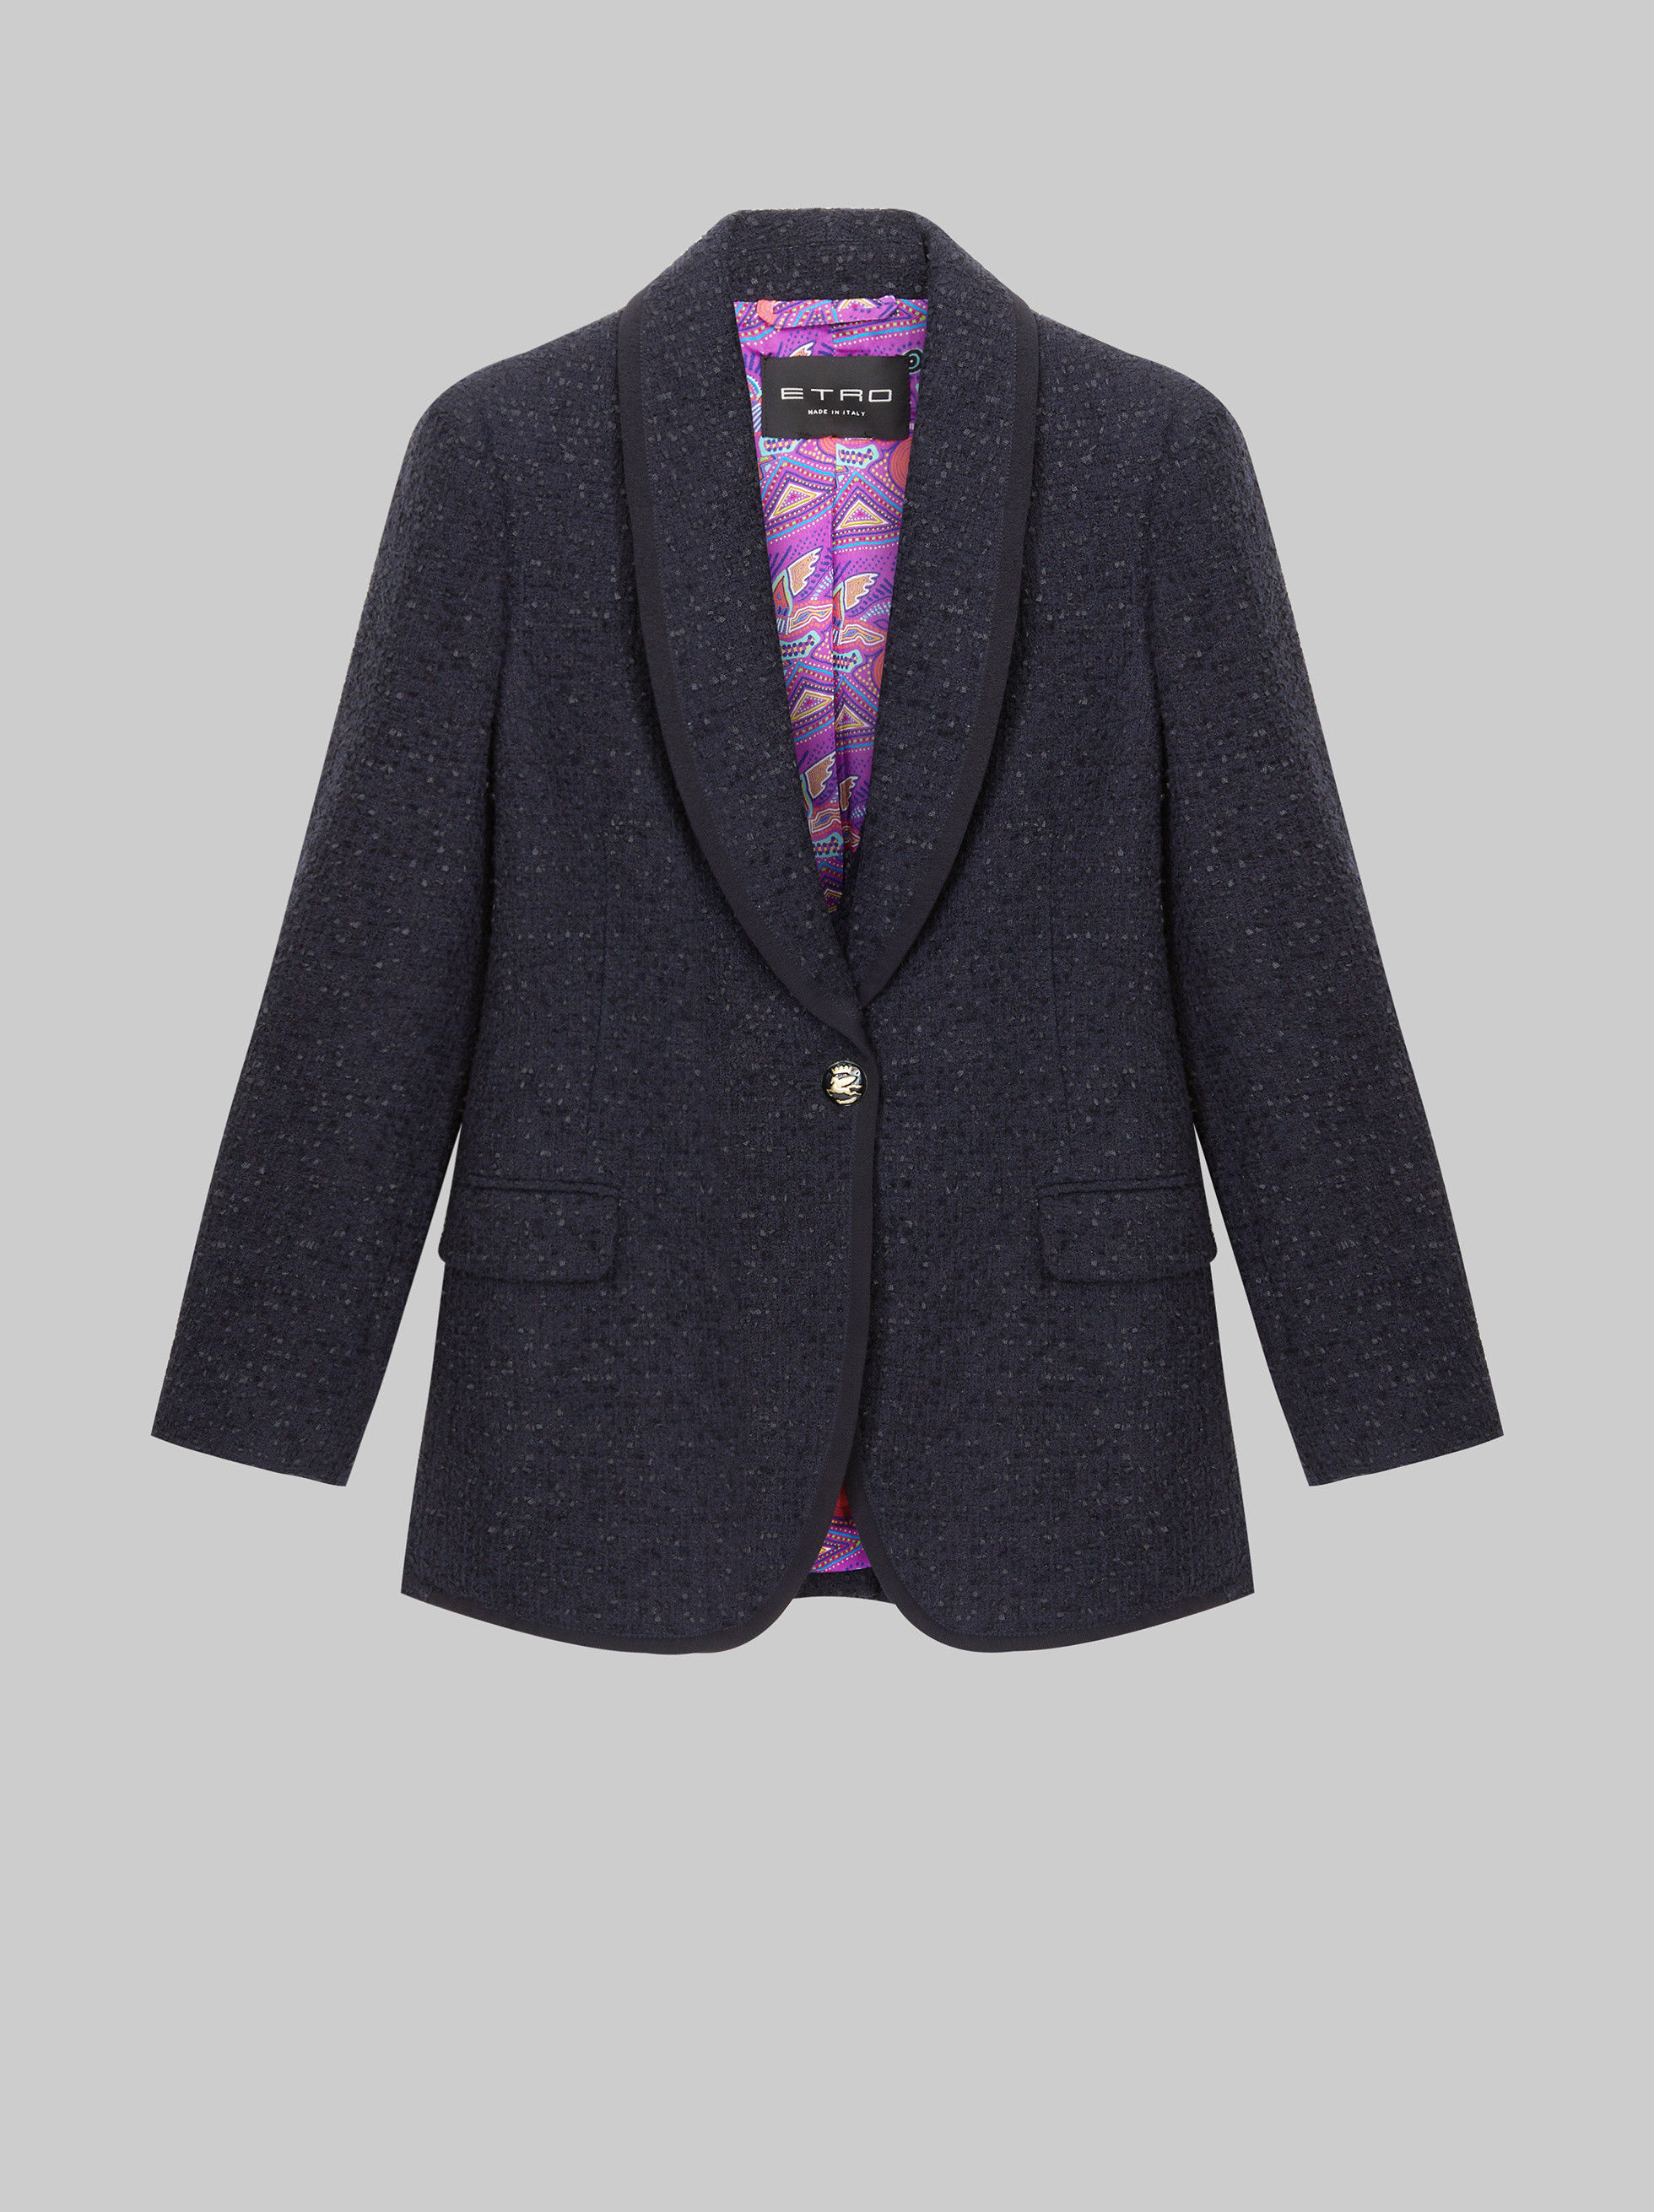 FRISÉ TAILORED JACKET WITH PEGASO BUTTONS